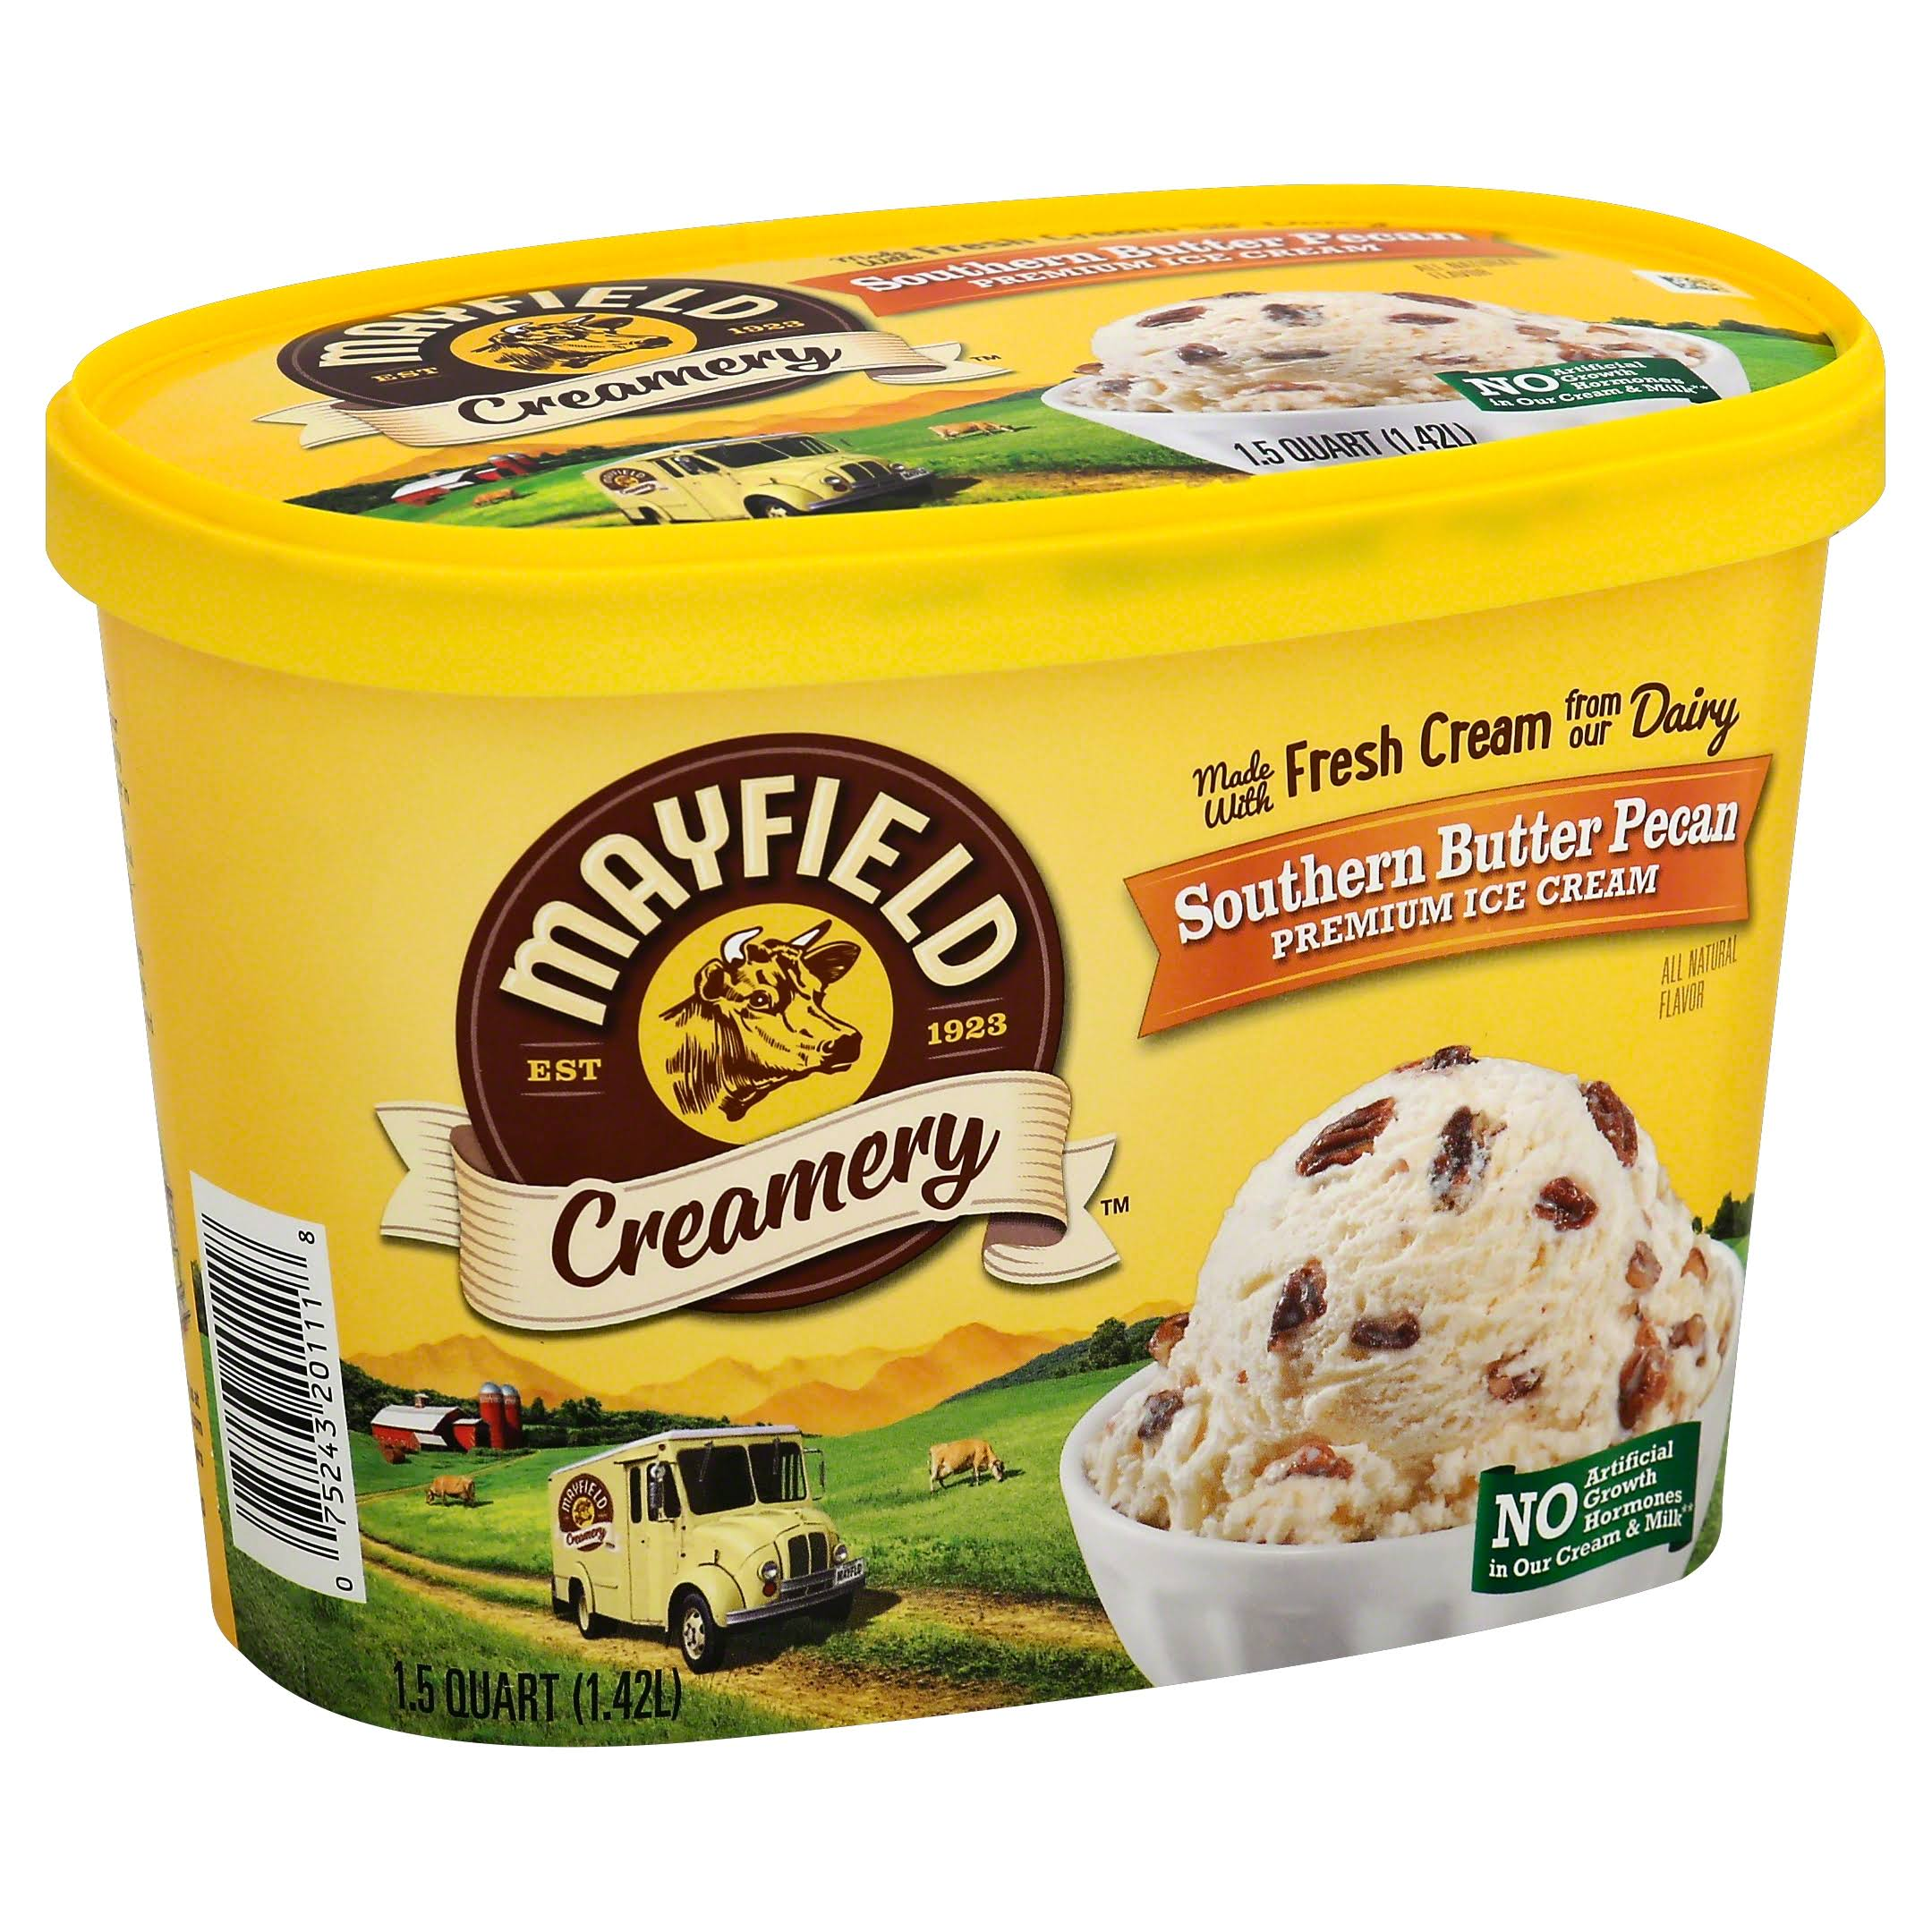 Mayfield Butter Pecan Select Ice Cream - 1.5 Quart